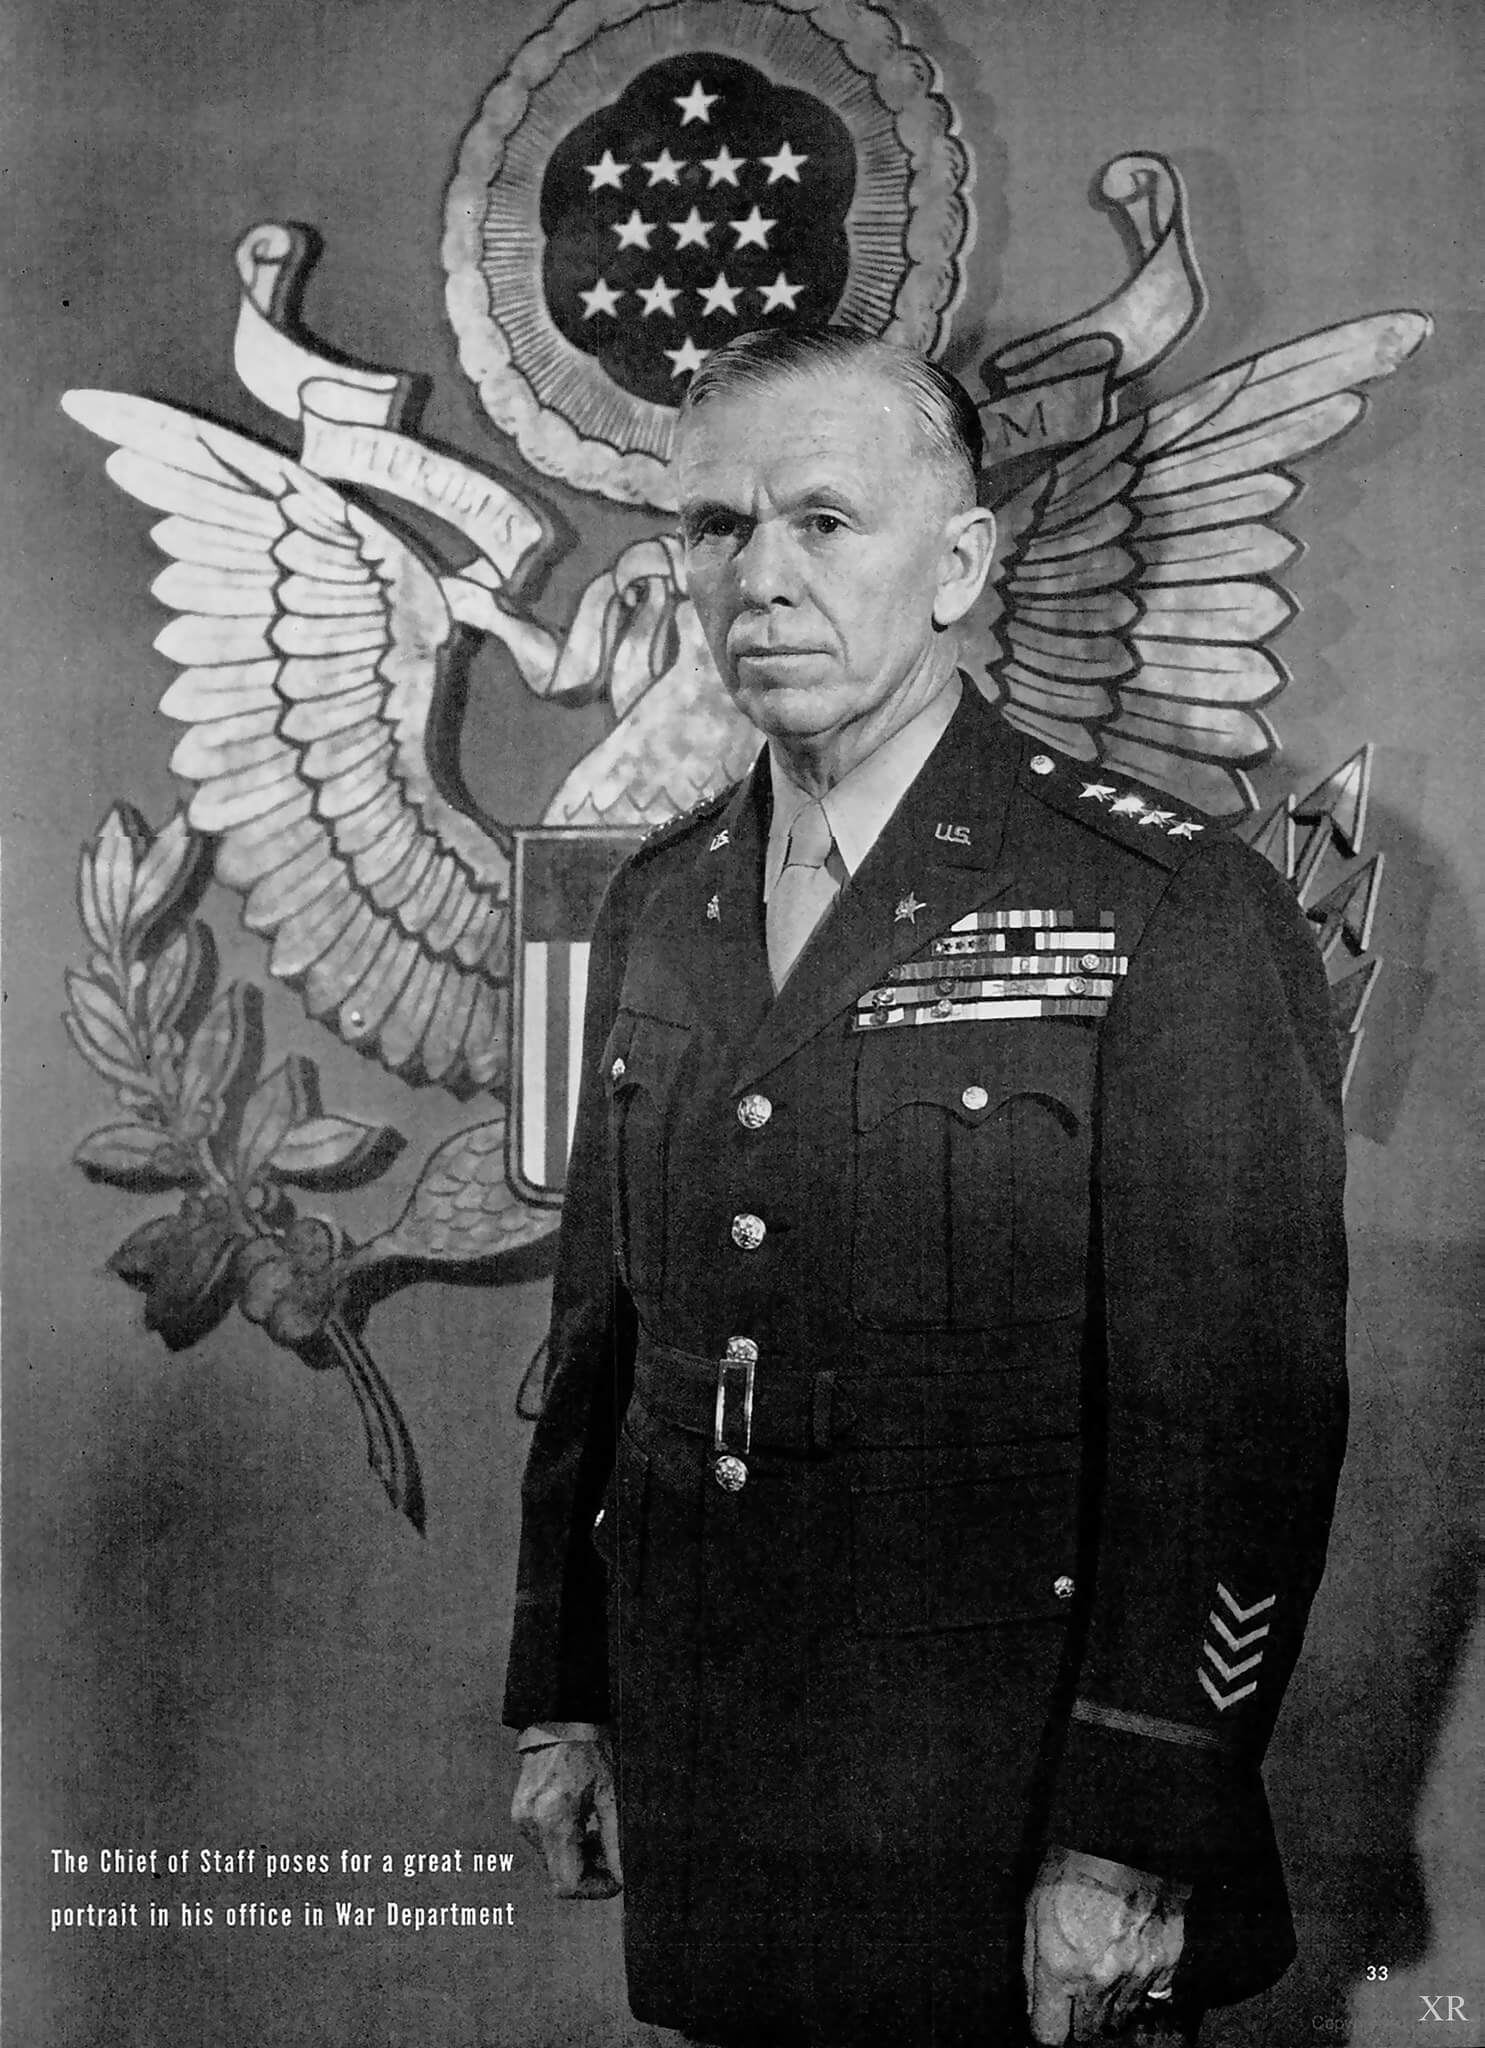 Scott-Smith-foto3-1943-gen. george marshall-Flickr-James Vaughan